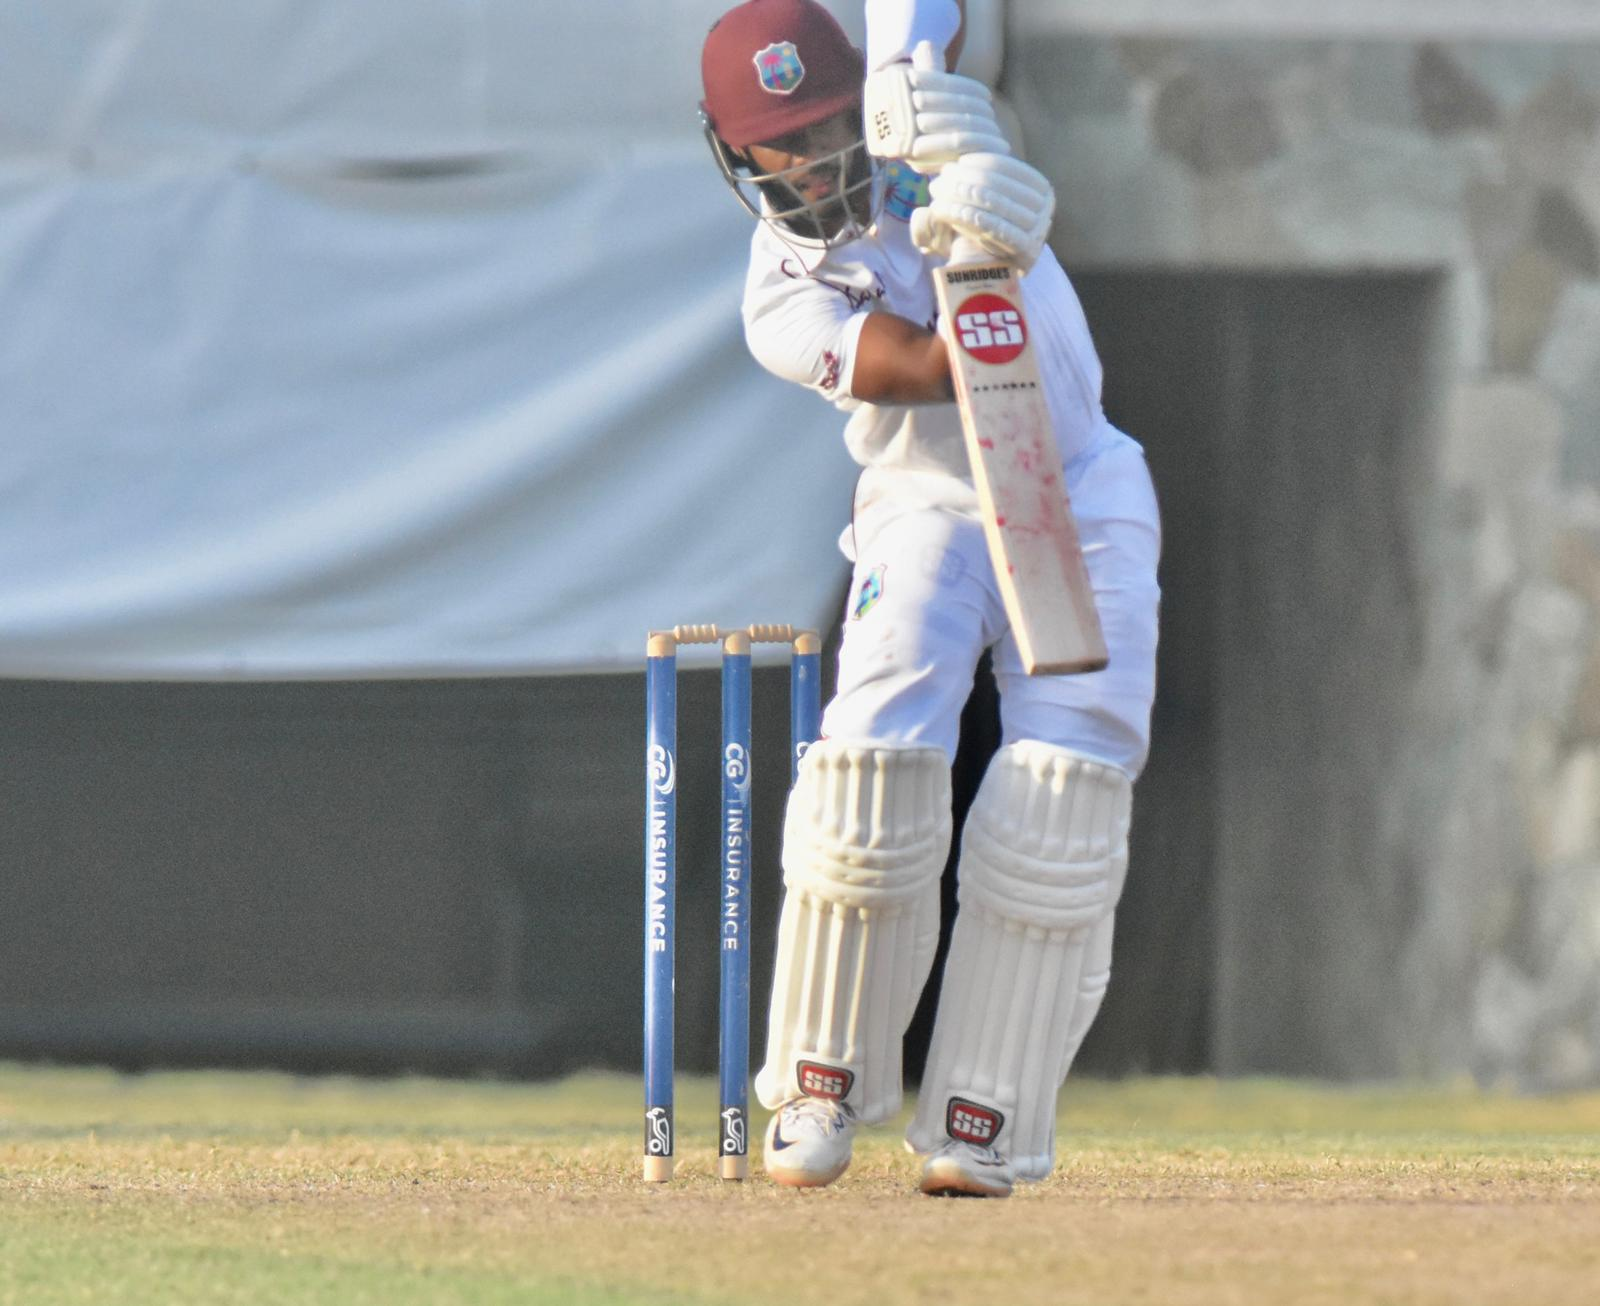 Windies 56-4 in their first innings at tea, 2nd day, 2nd Test